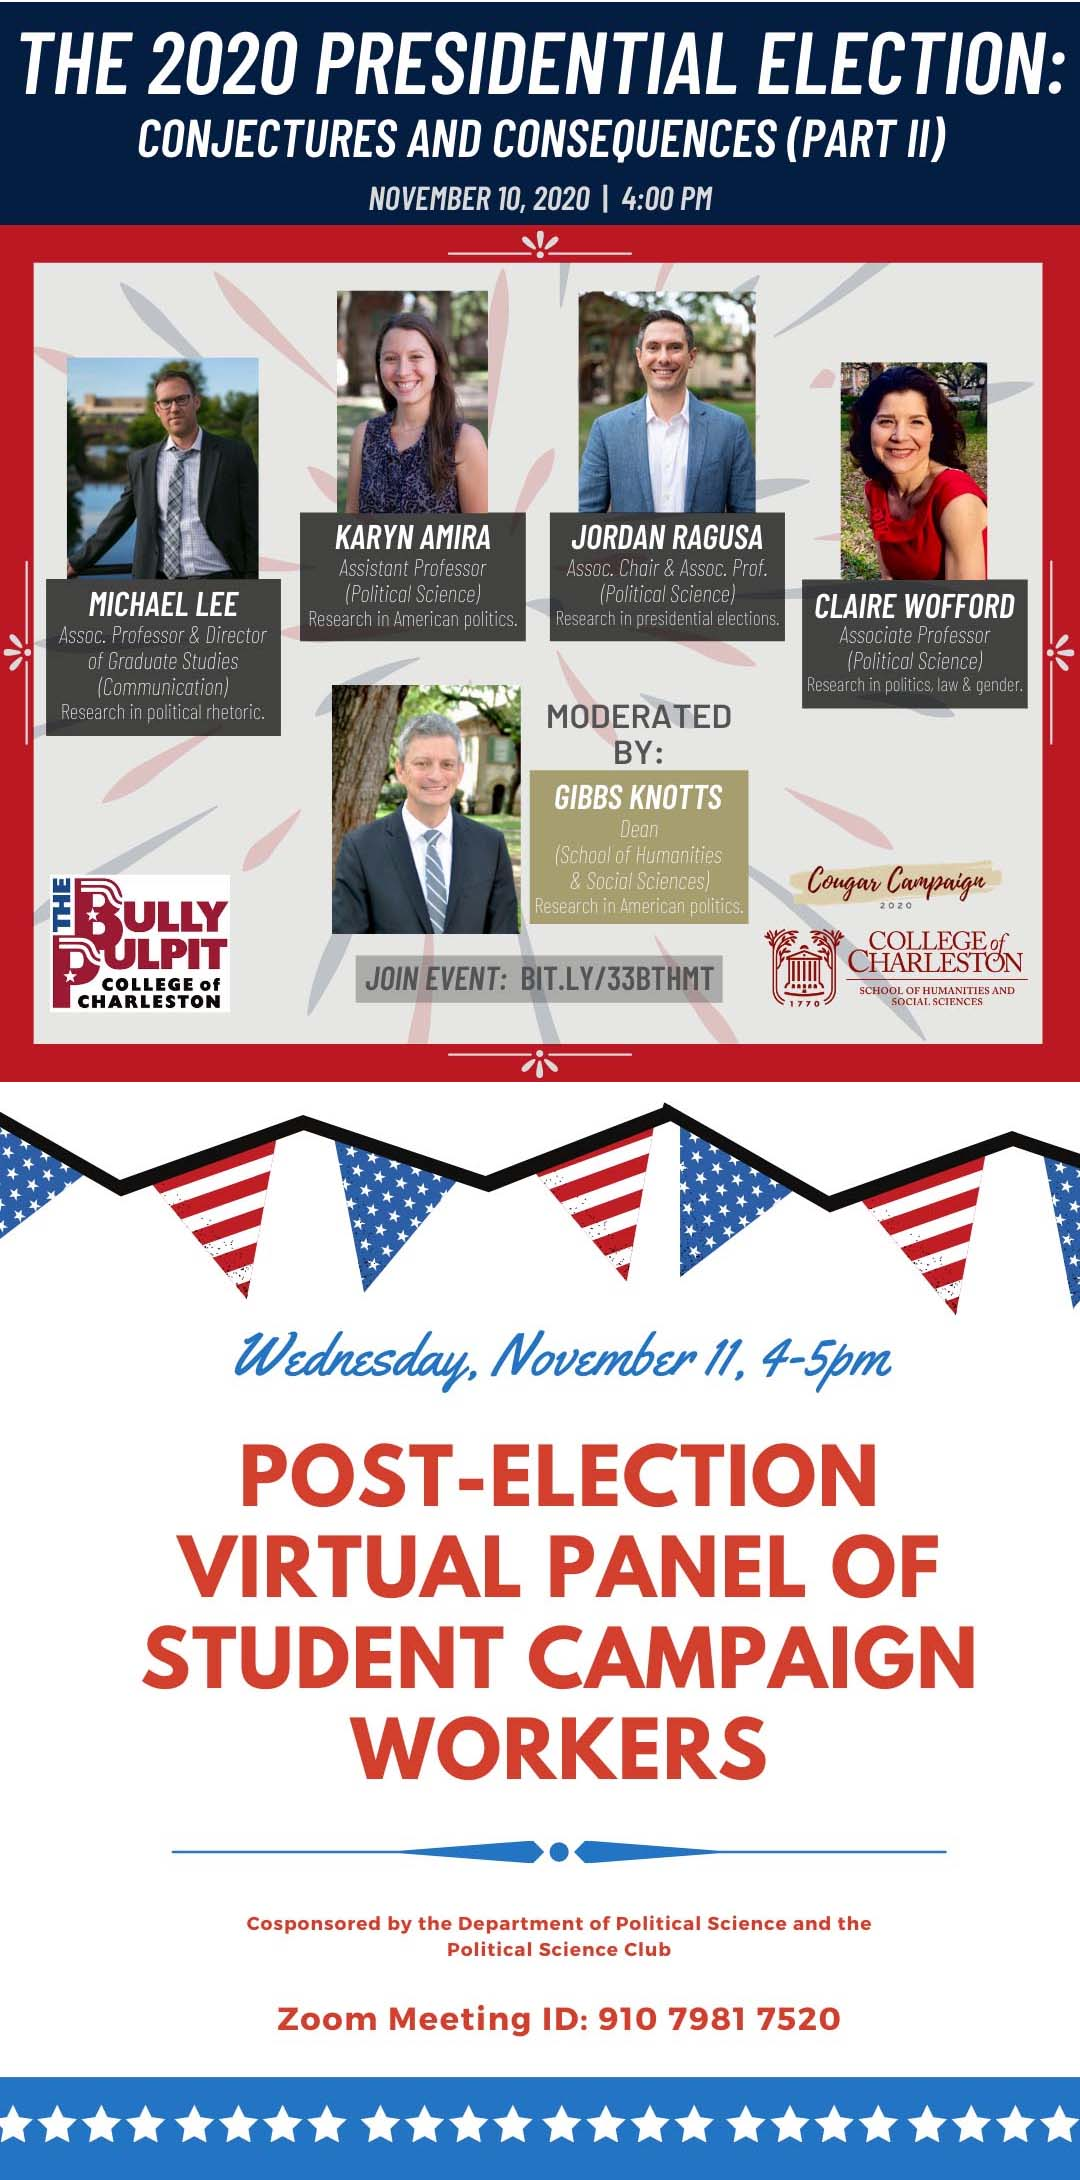 https://today.cofc.edu/wp-content/uploads/2020/11/Presidential-Panels.jpg